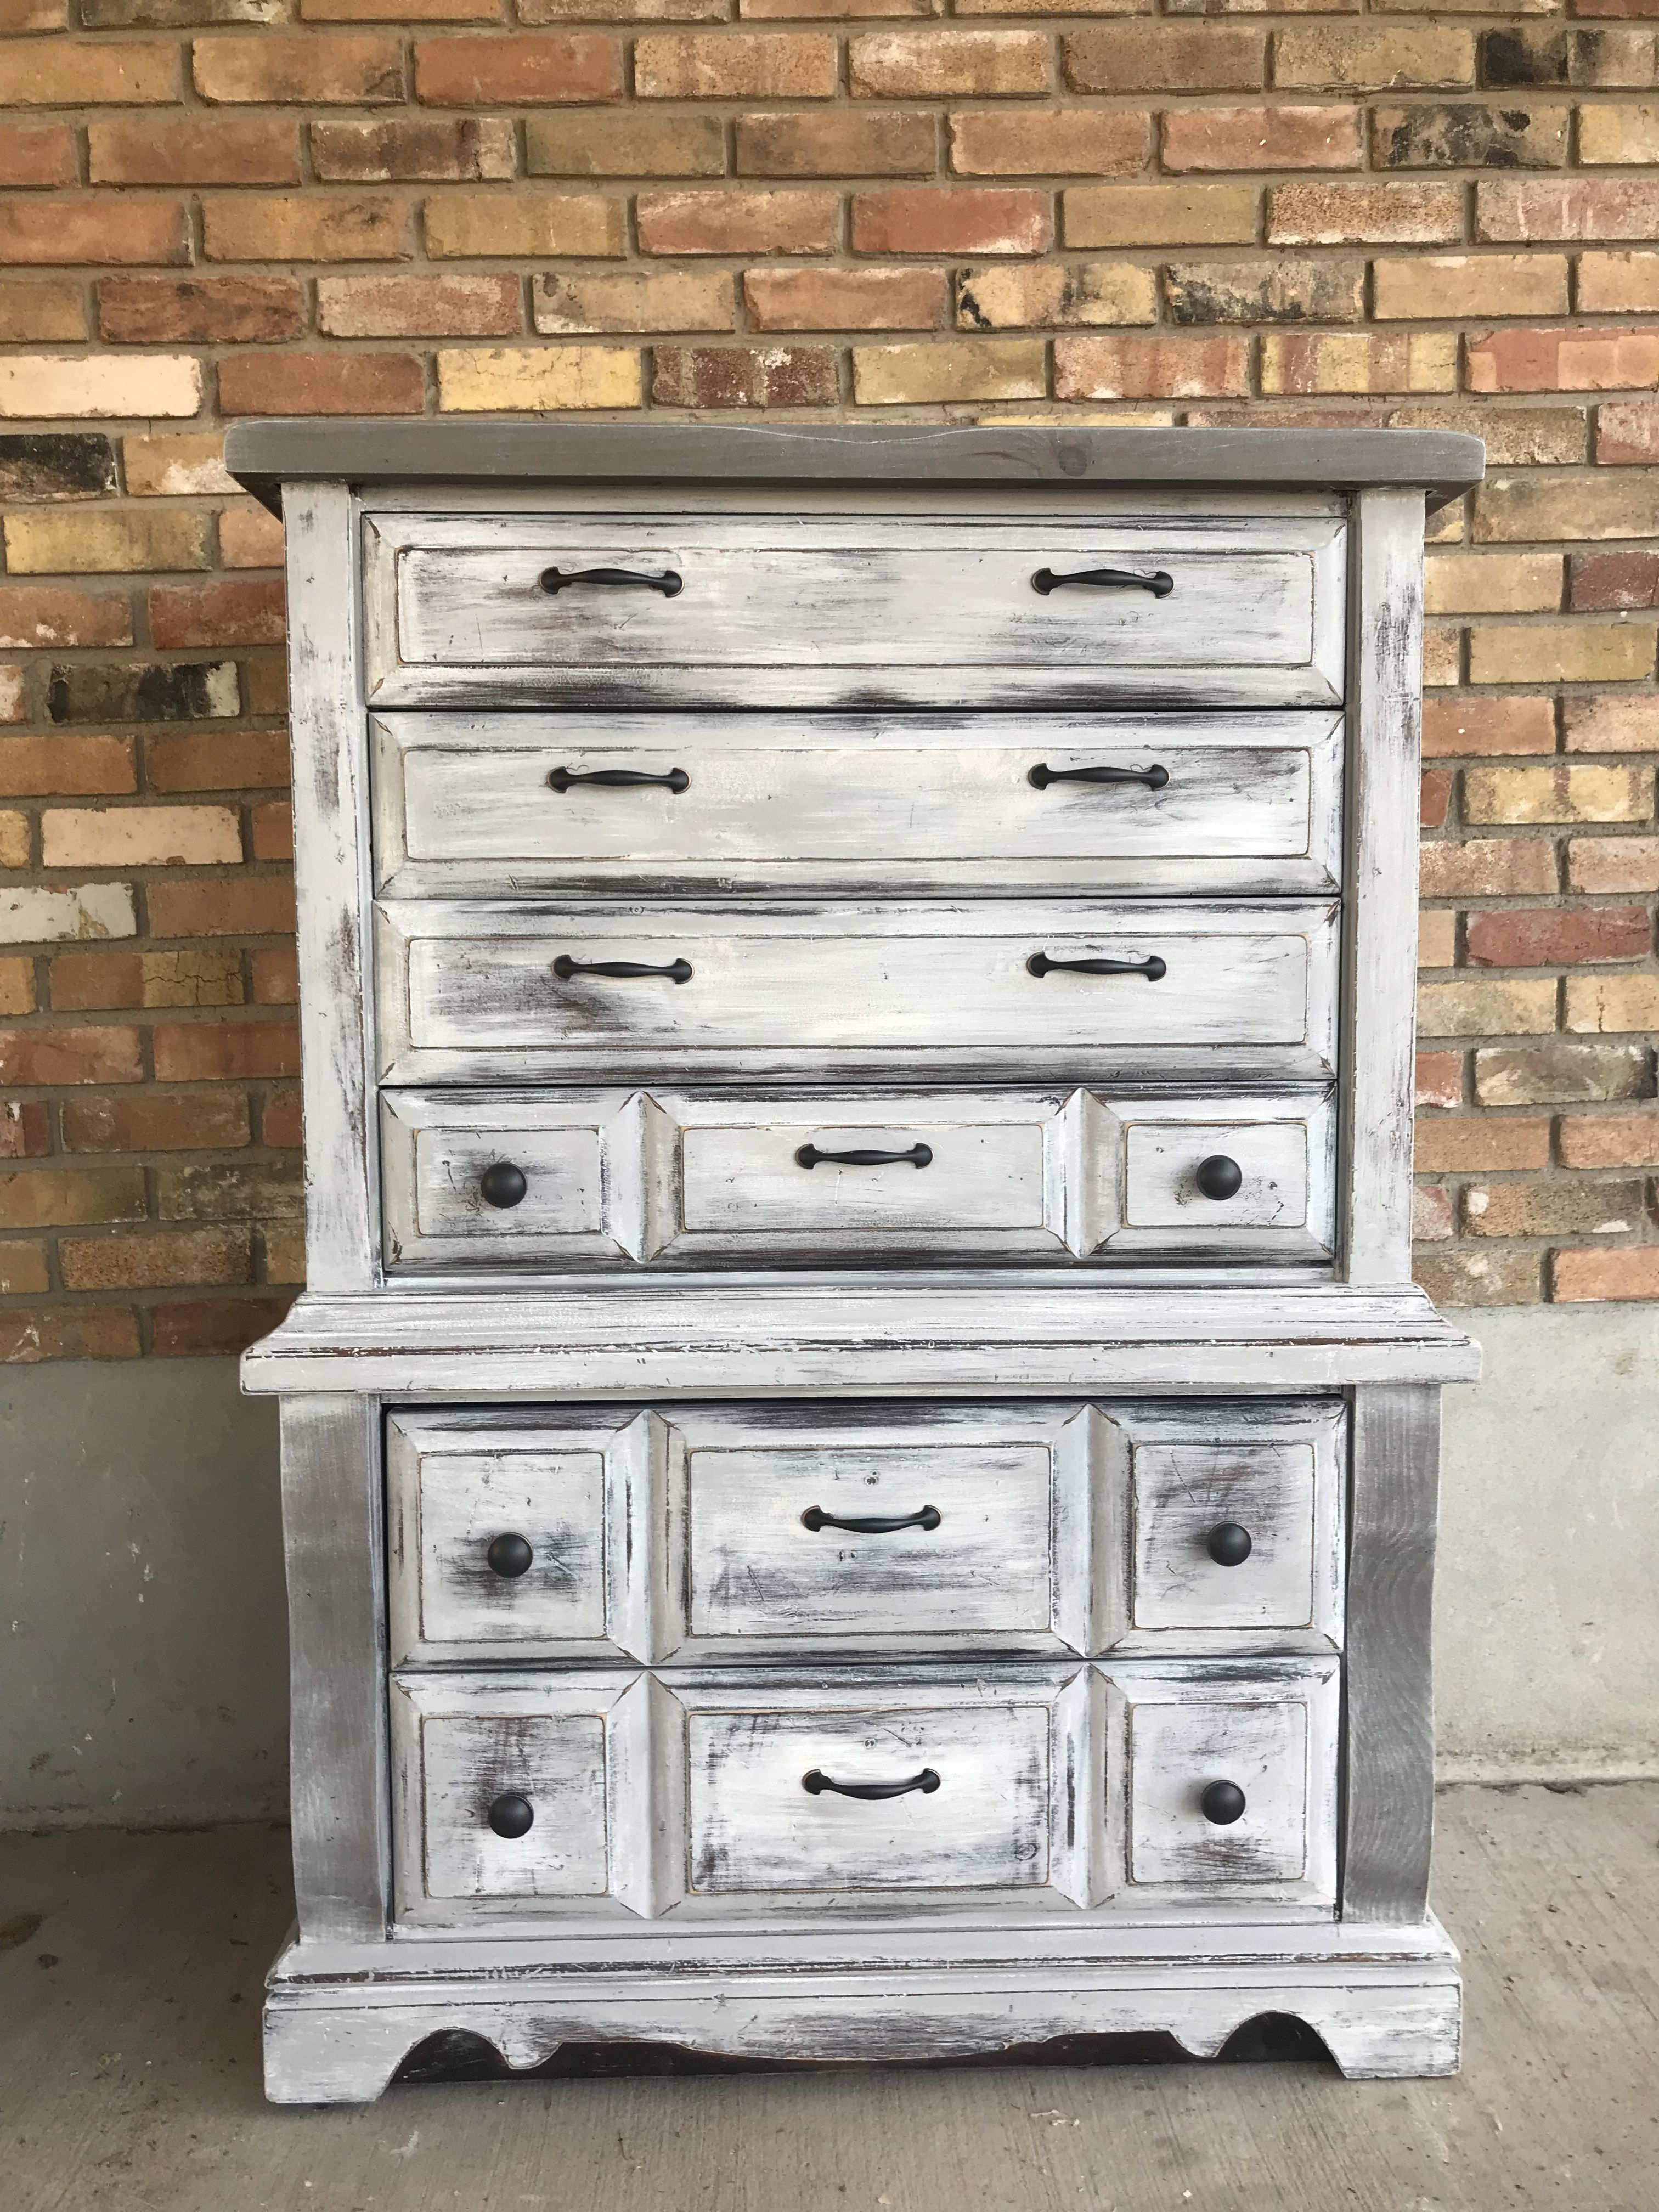 Dry Brushed Rustic Dresser Finished In Annie Sloan Chalk Paint In Pure White With Paris Grey